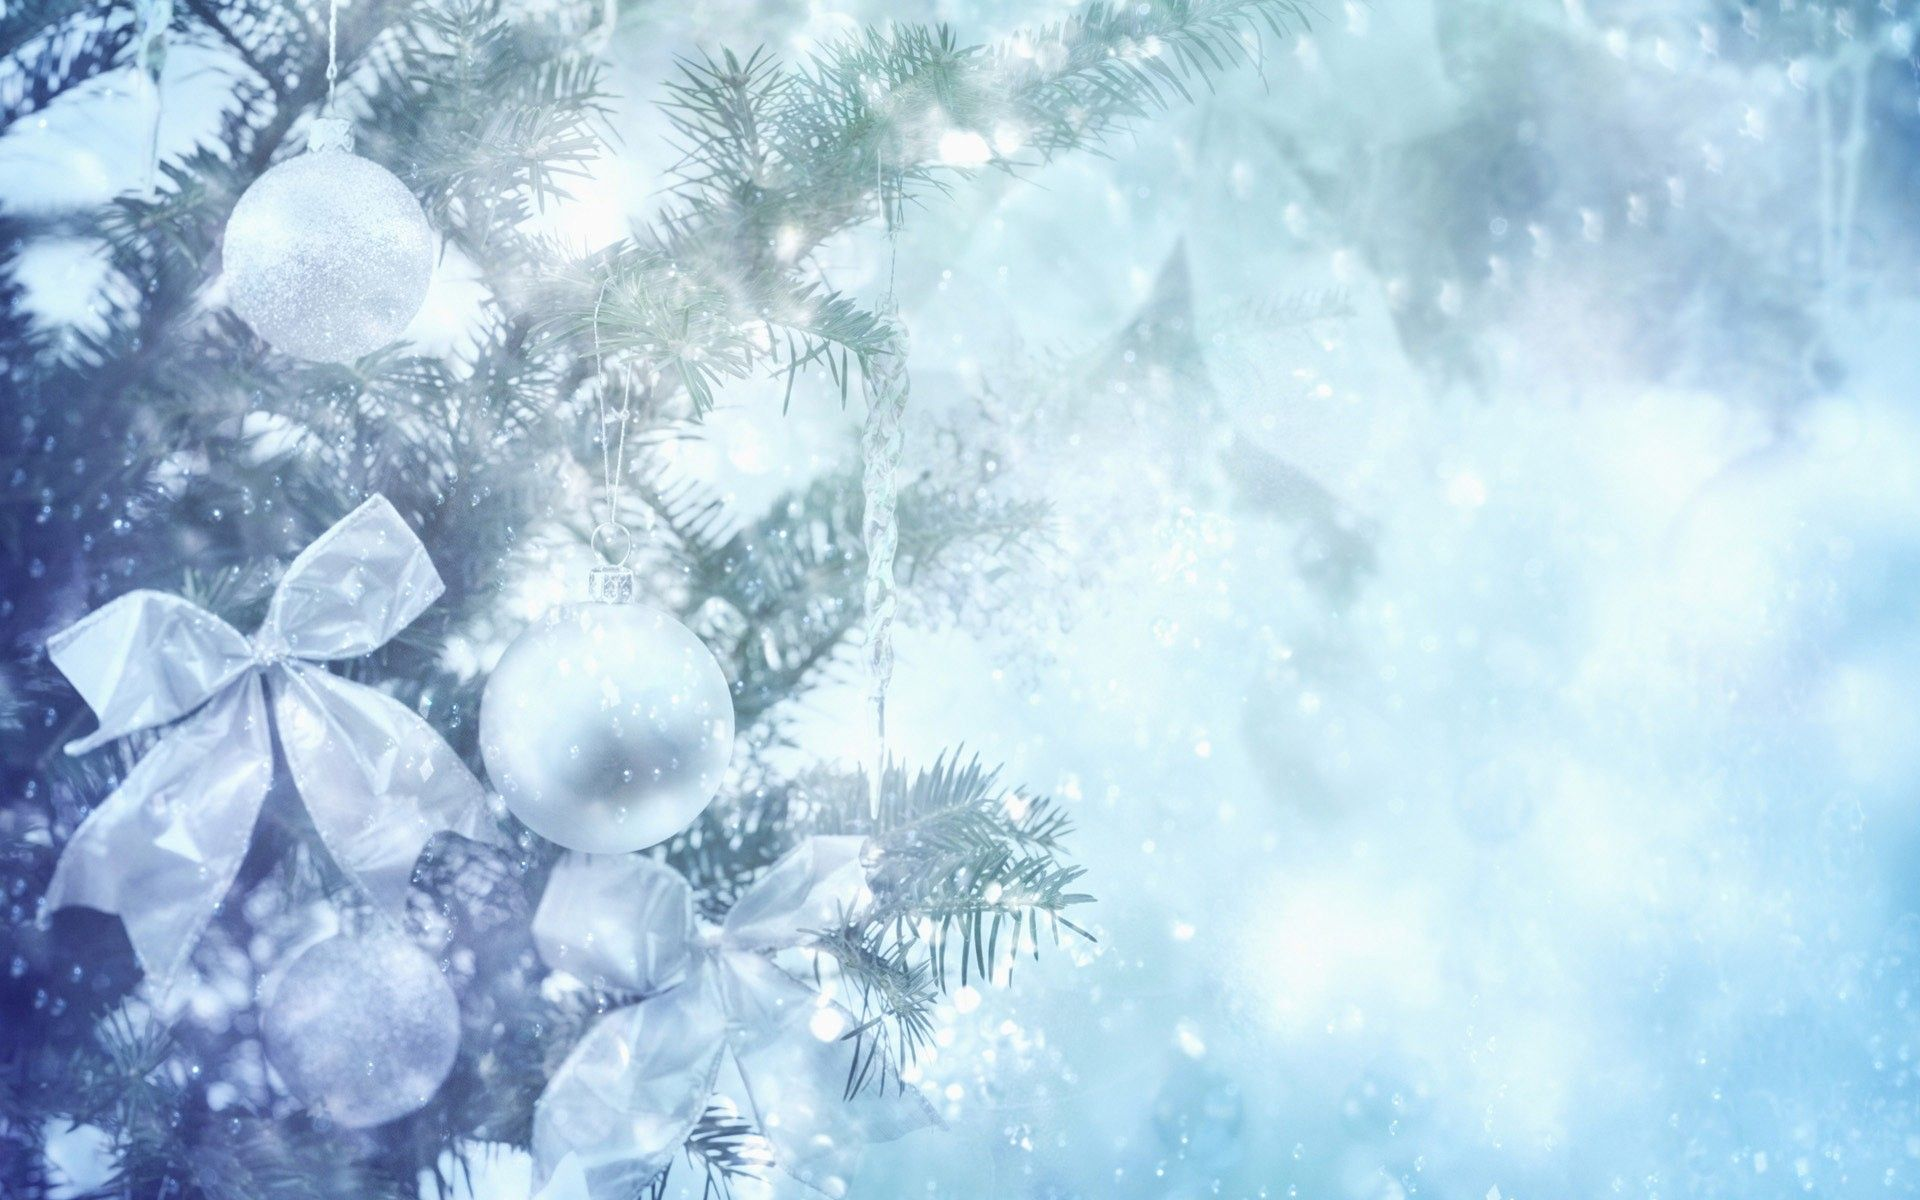 Winter Christmas Wallpaper High Quality Resolution Is Cool Wallpapers